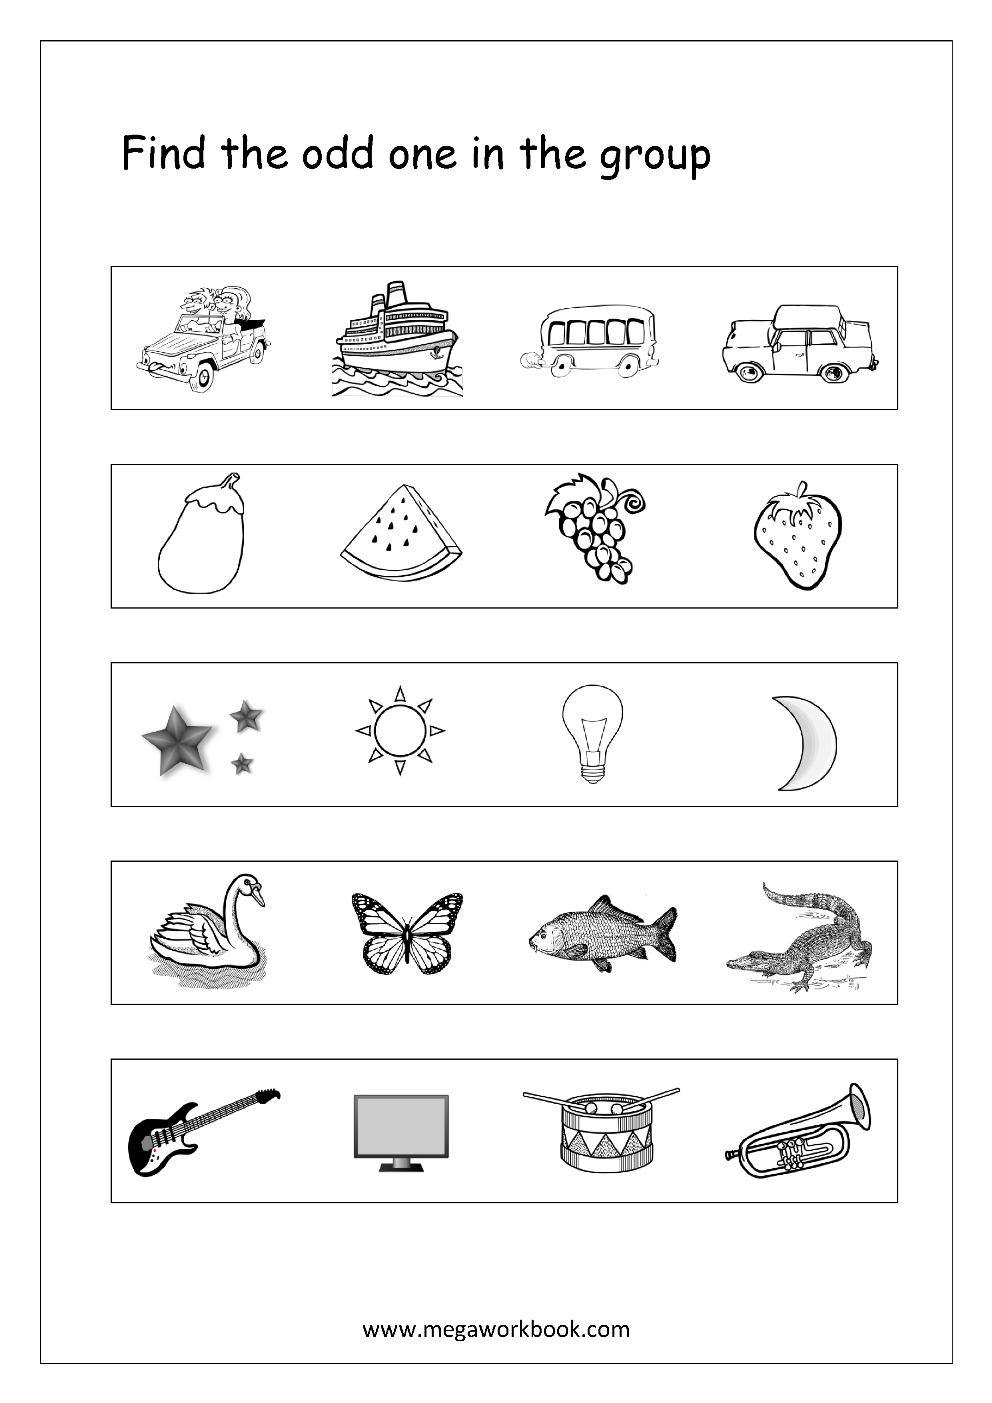 Odd One Out - Worksheet 2 | kézműves | Kindergarten worksheets ...